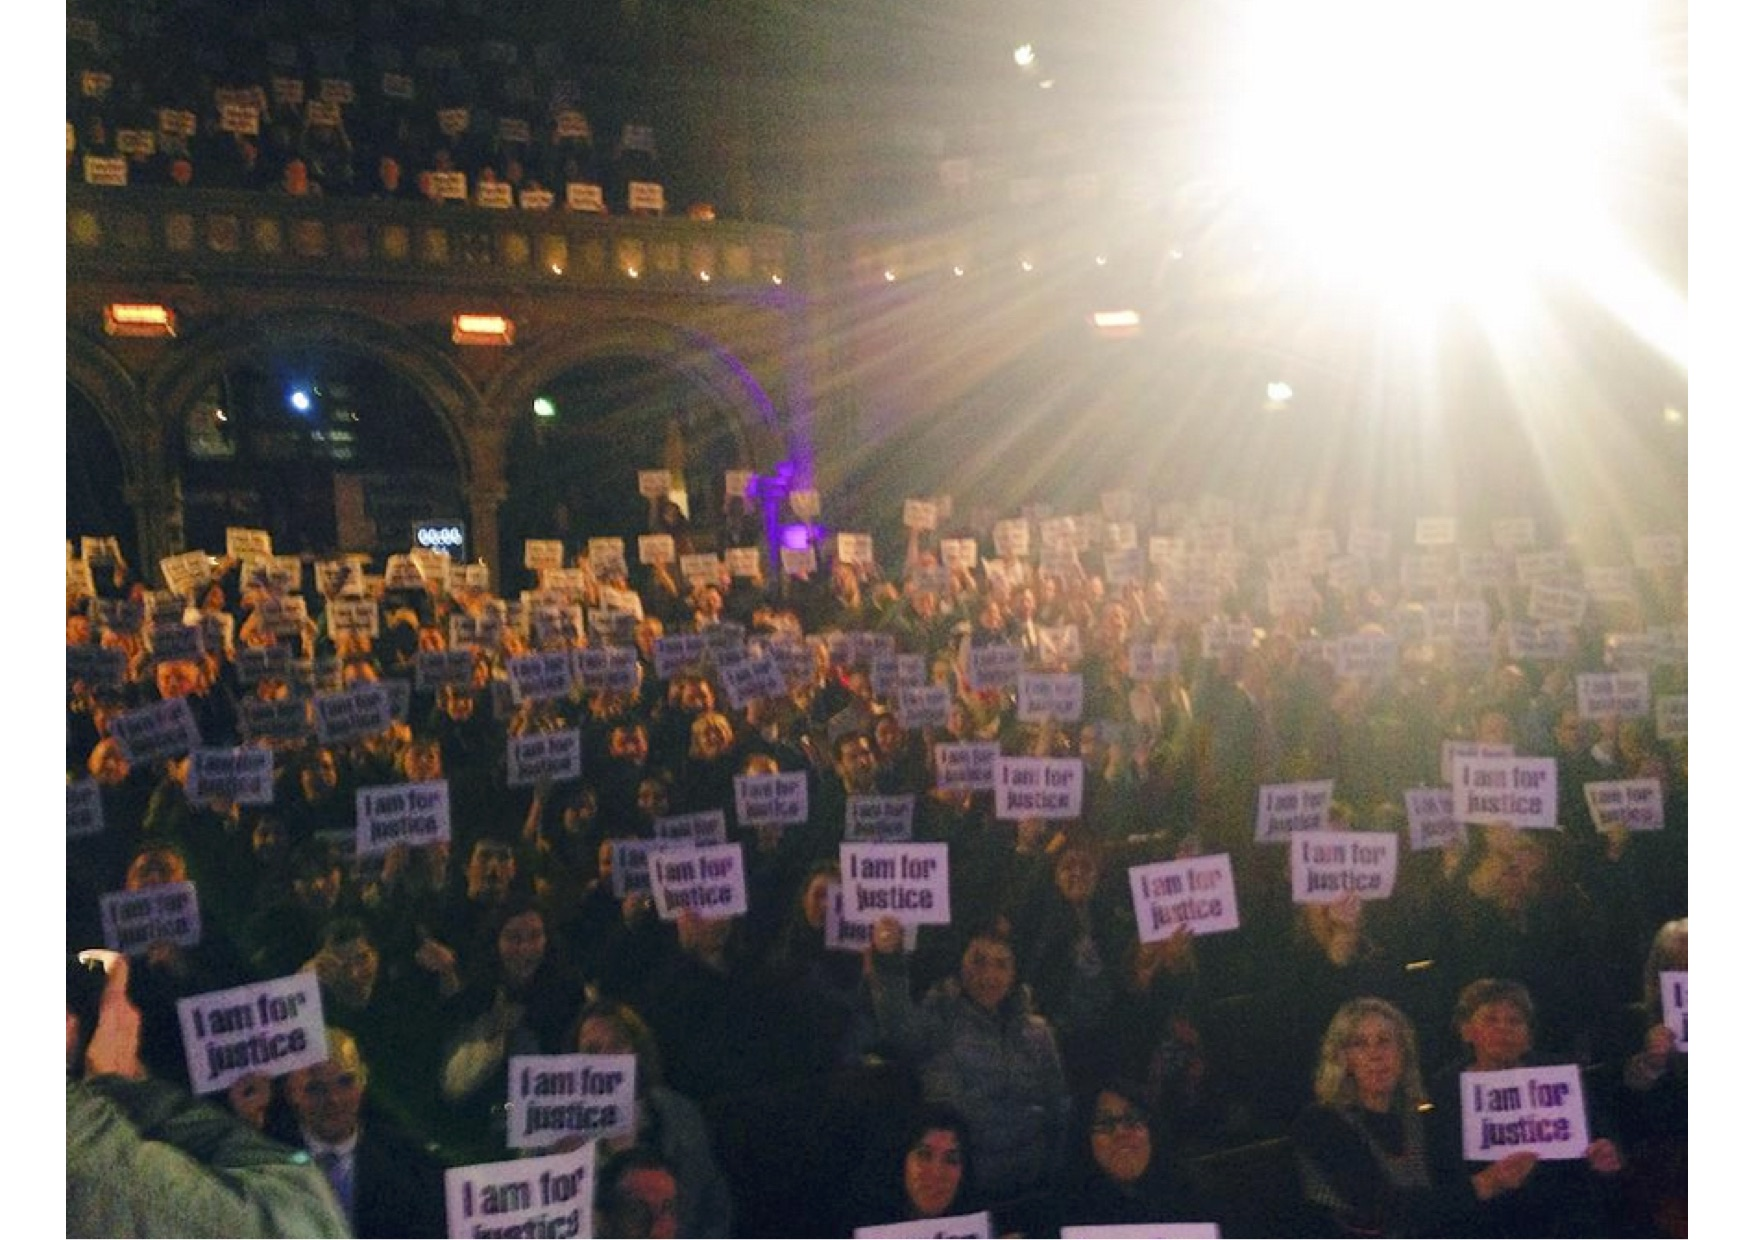 Stand up for justice: Pic by Mary-Rachel McCabe from stage of the Union Chapel at 'Not the global law summit'